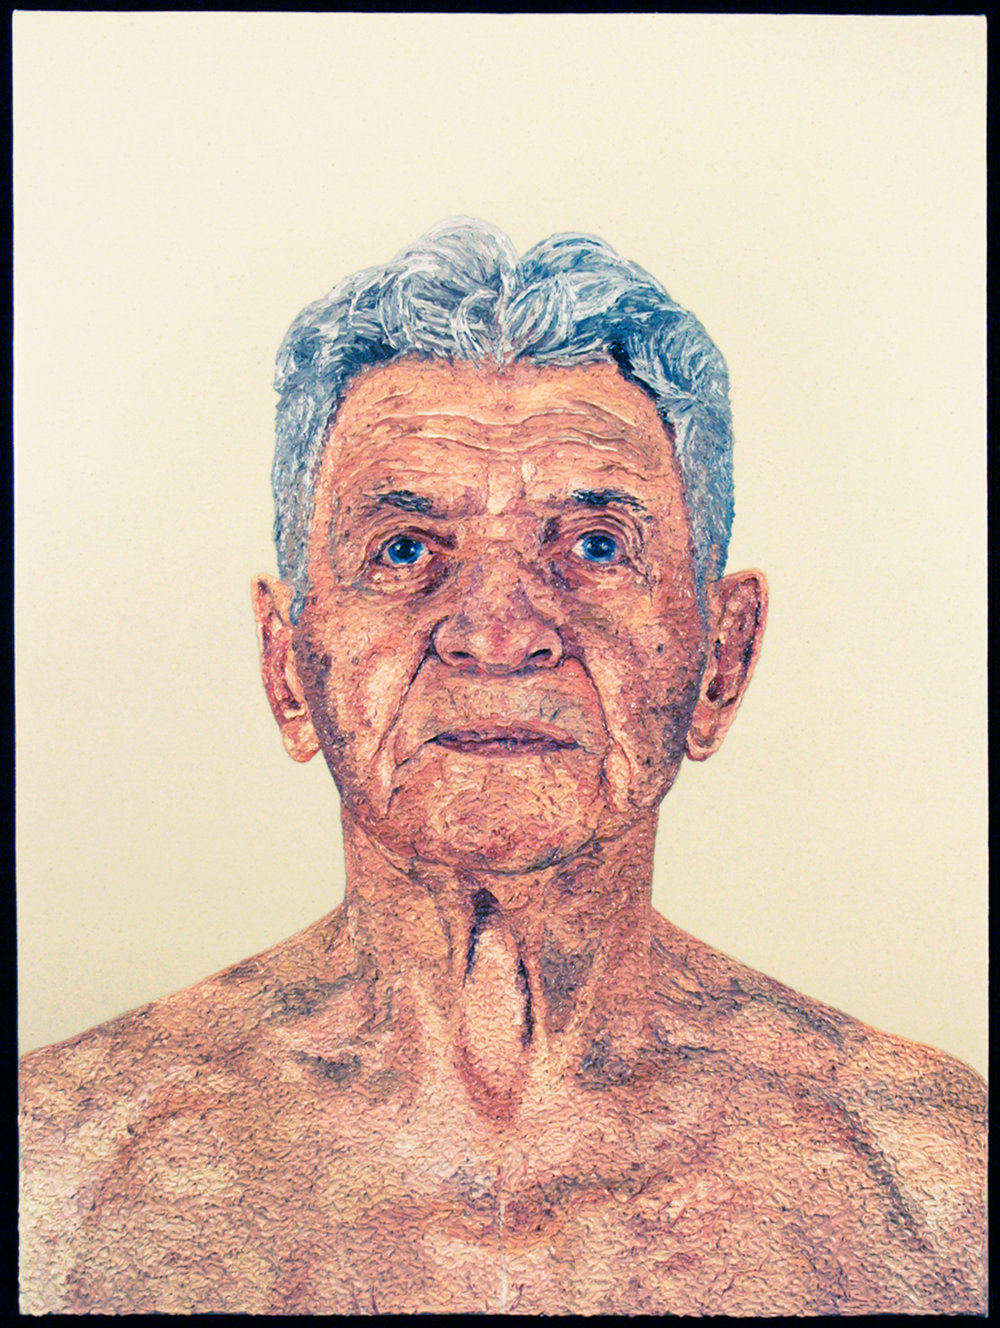 Grandpa Joe, 2008  |  48 x 38 inches  |  oil and urethane on canvas